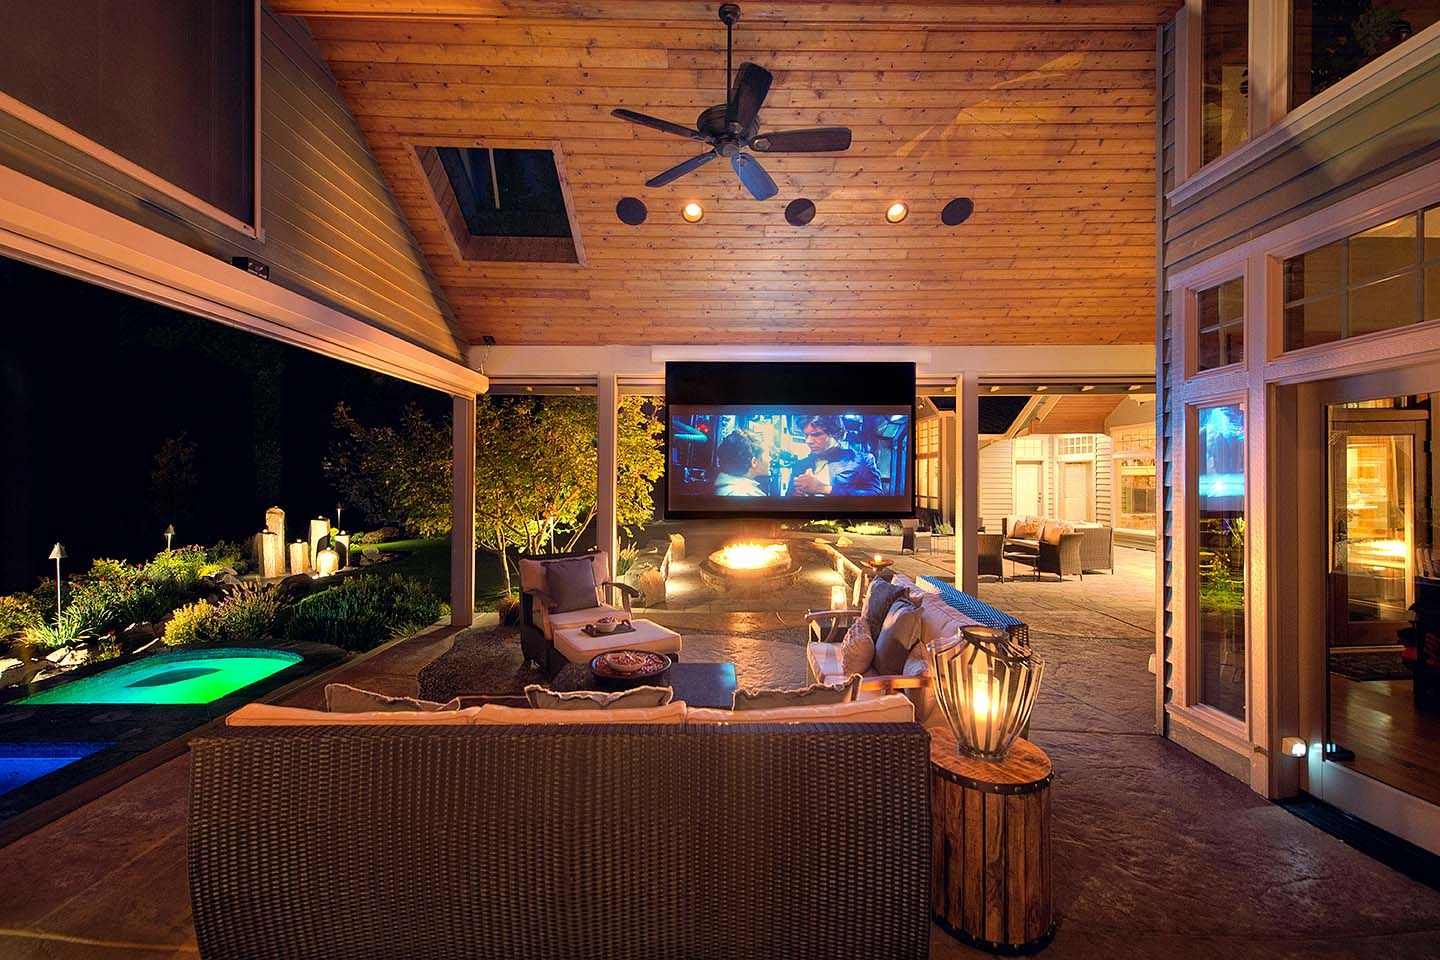 Luxury Outdoor Living Spaces in 2020 | Outdoor living ... on Exclusive Outdoor Living id=33602